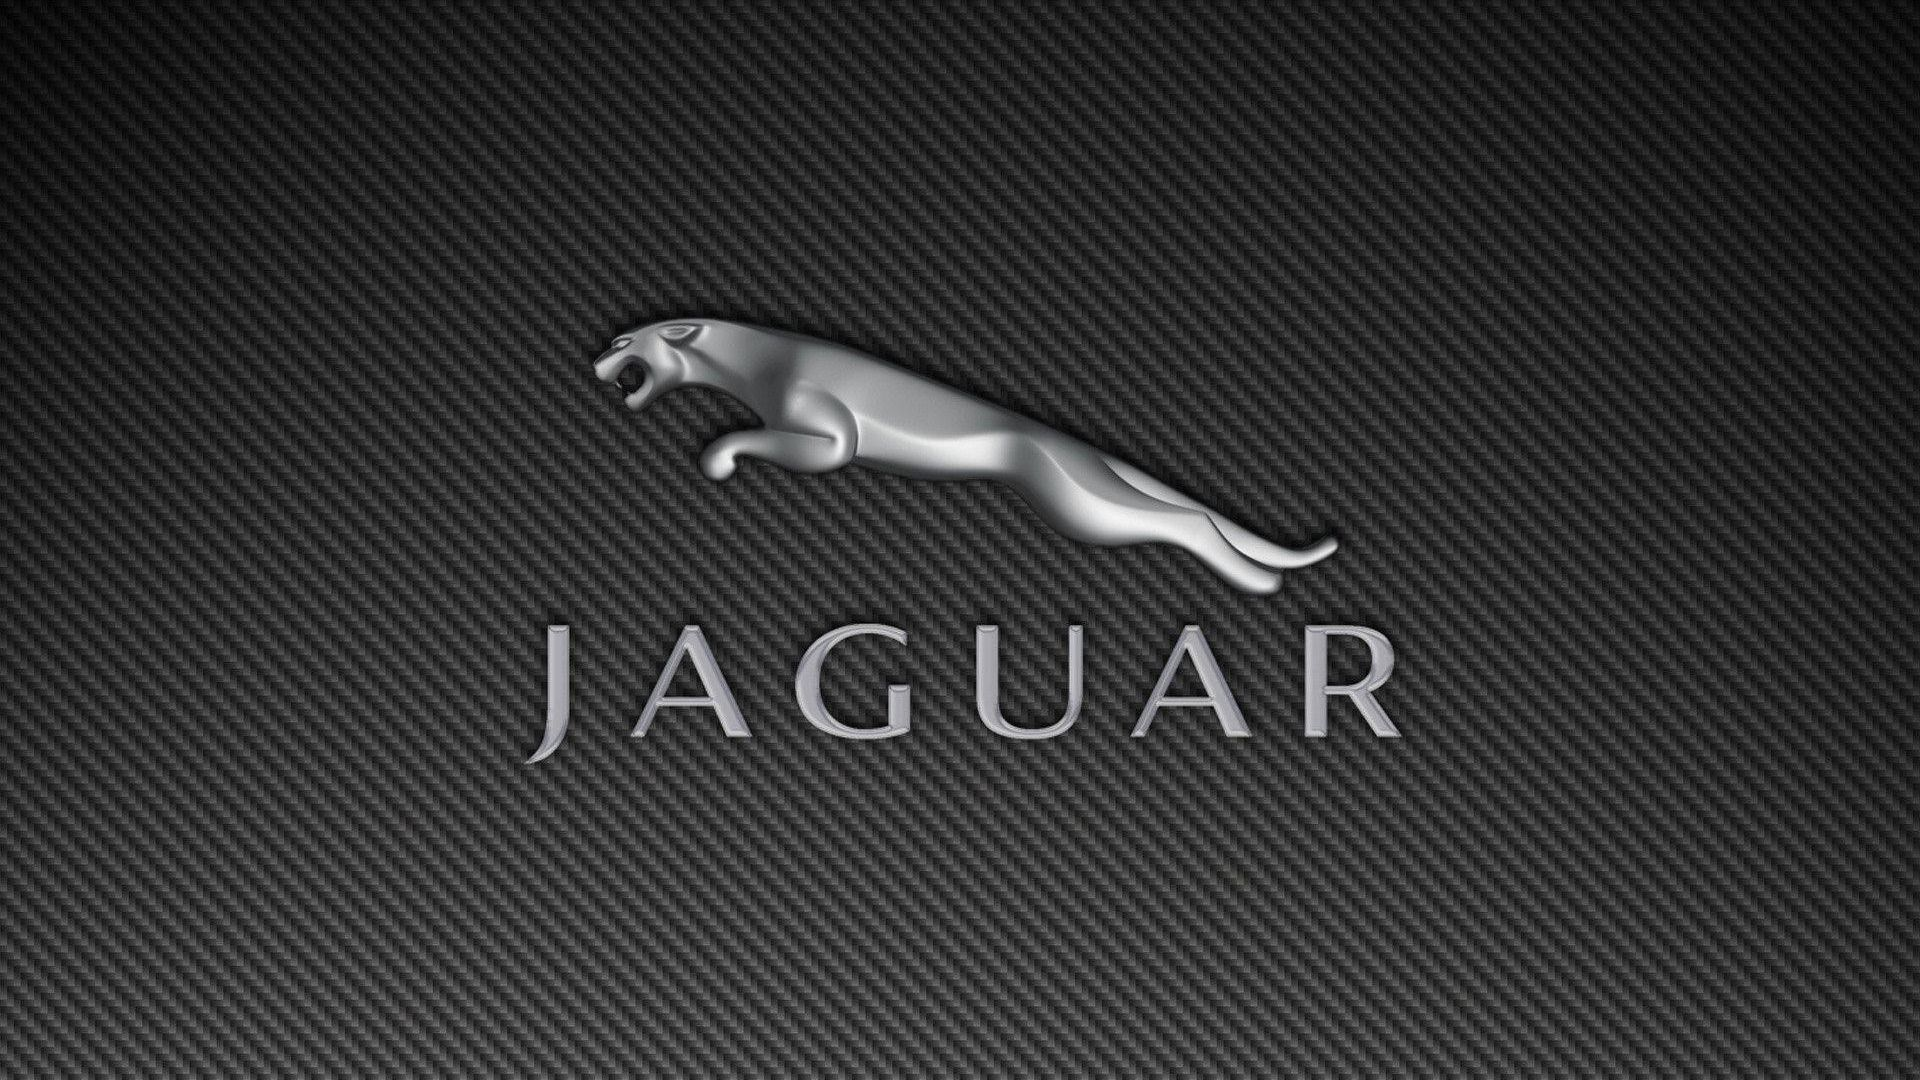 cable car,jaguar,car brand logos,figure,logo,automobile,brand,with,machine,screen background,cars,pattern,background,motorcar,formula,model,background knowledge,stain,car